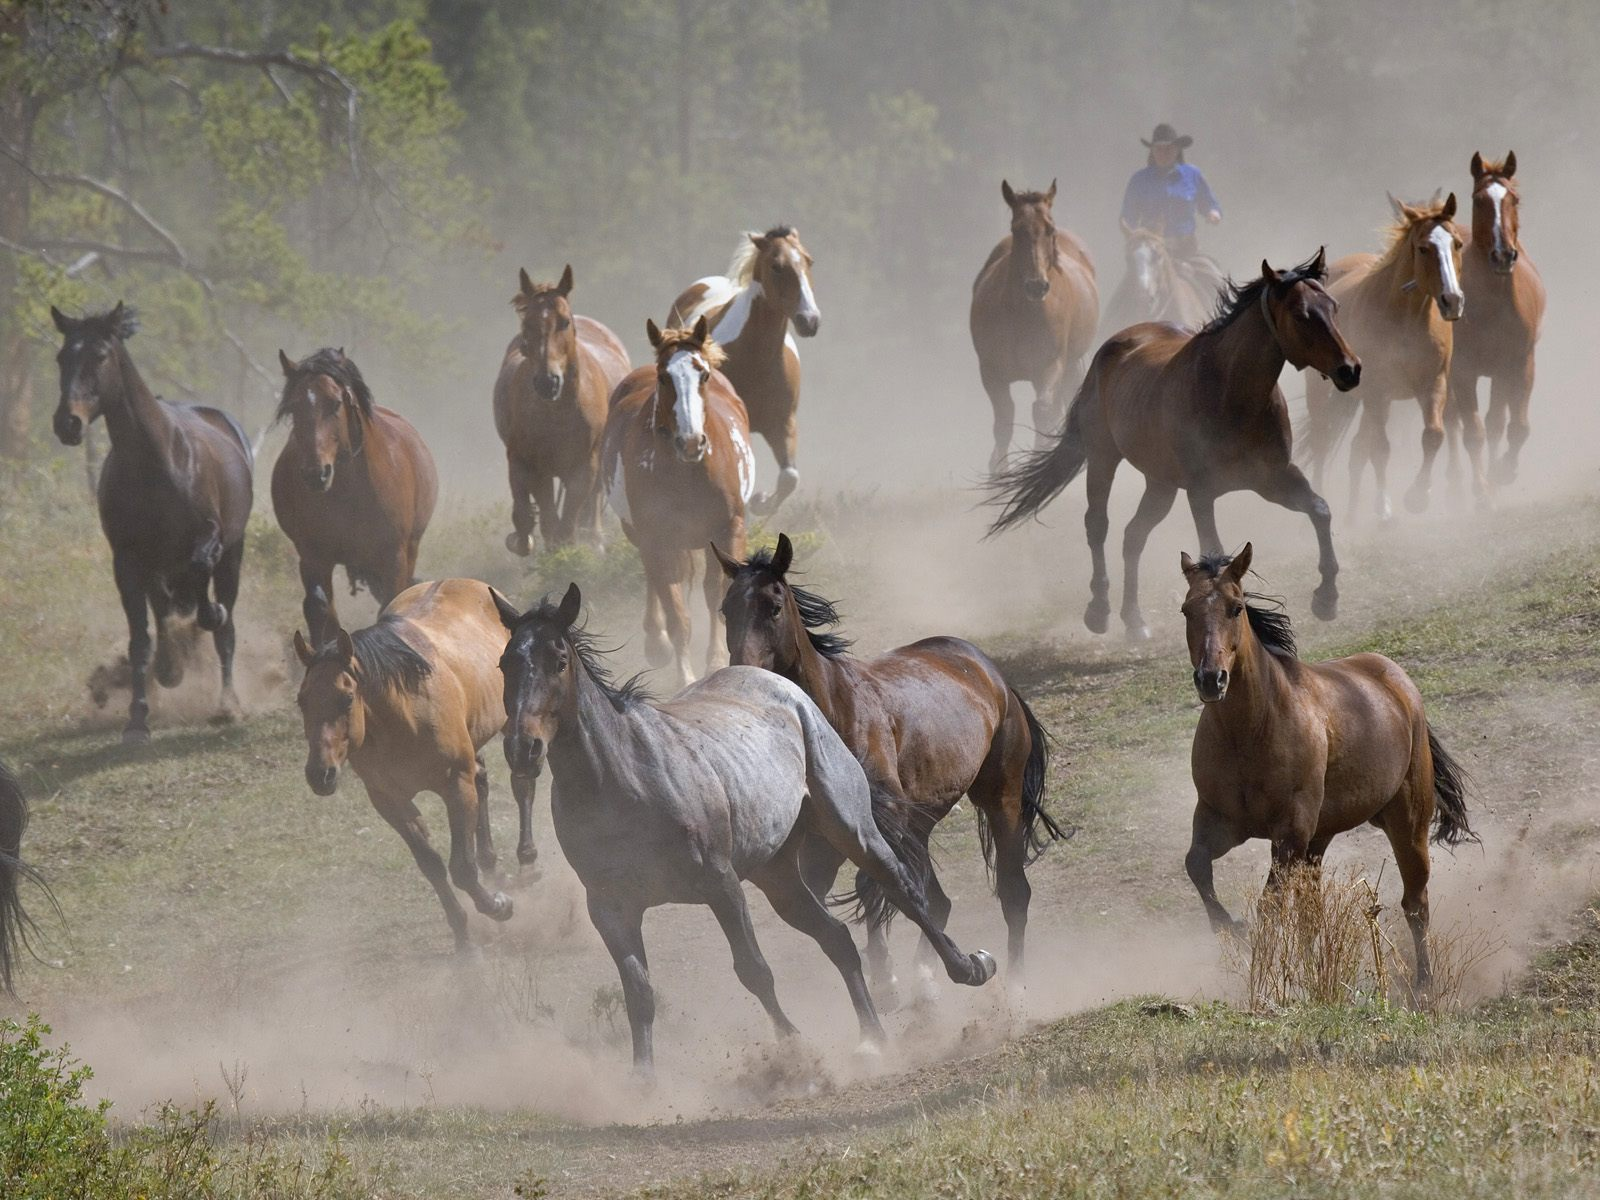 Image Running Horses Wallpapers And Stock Photos